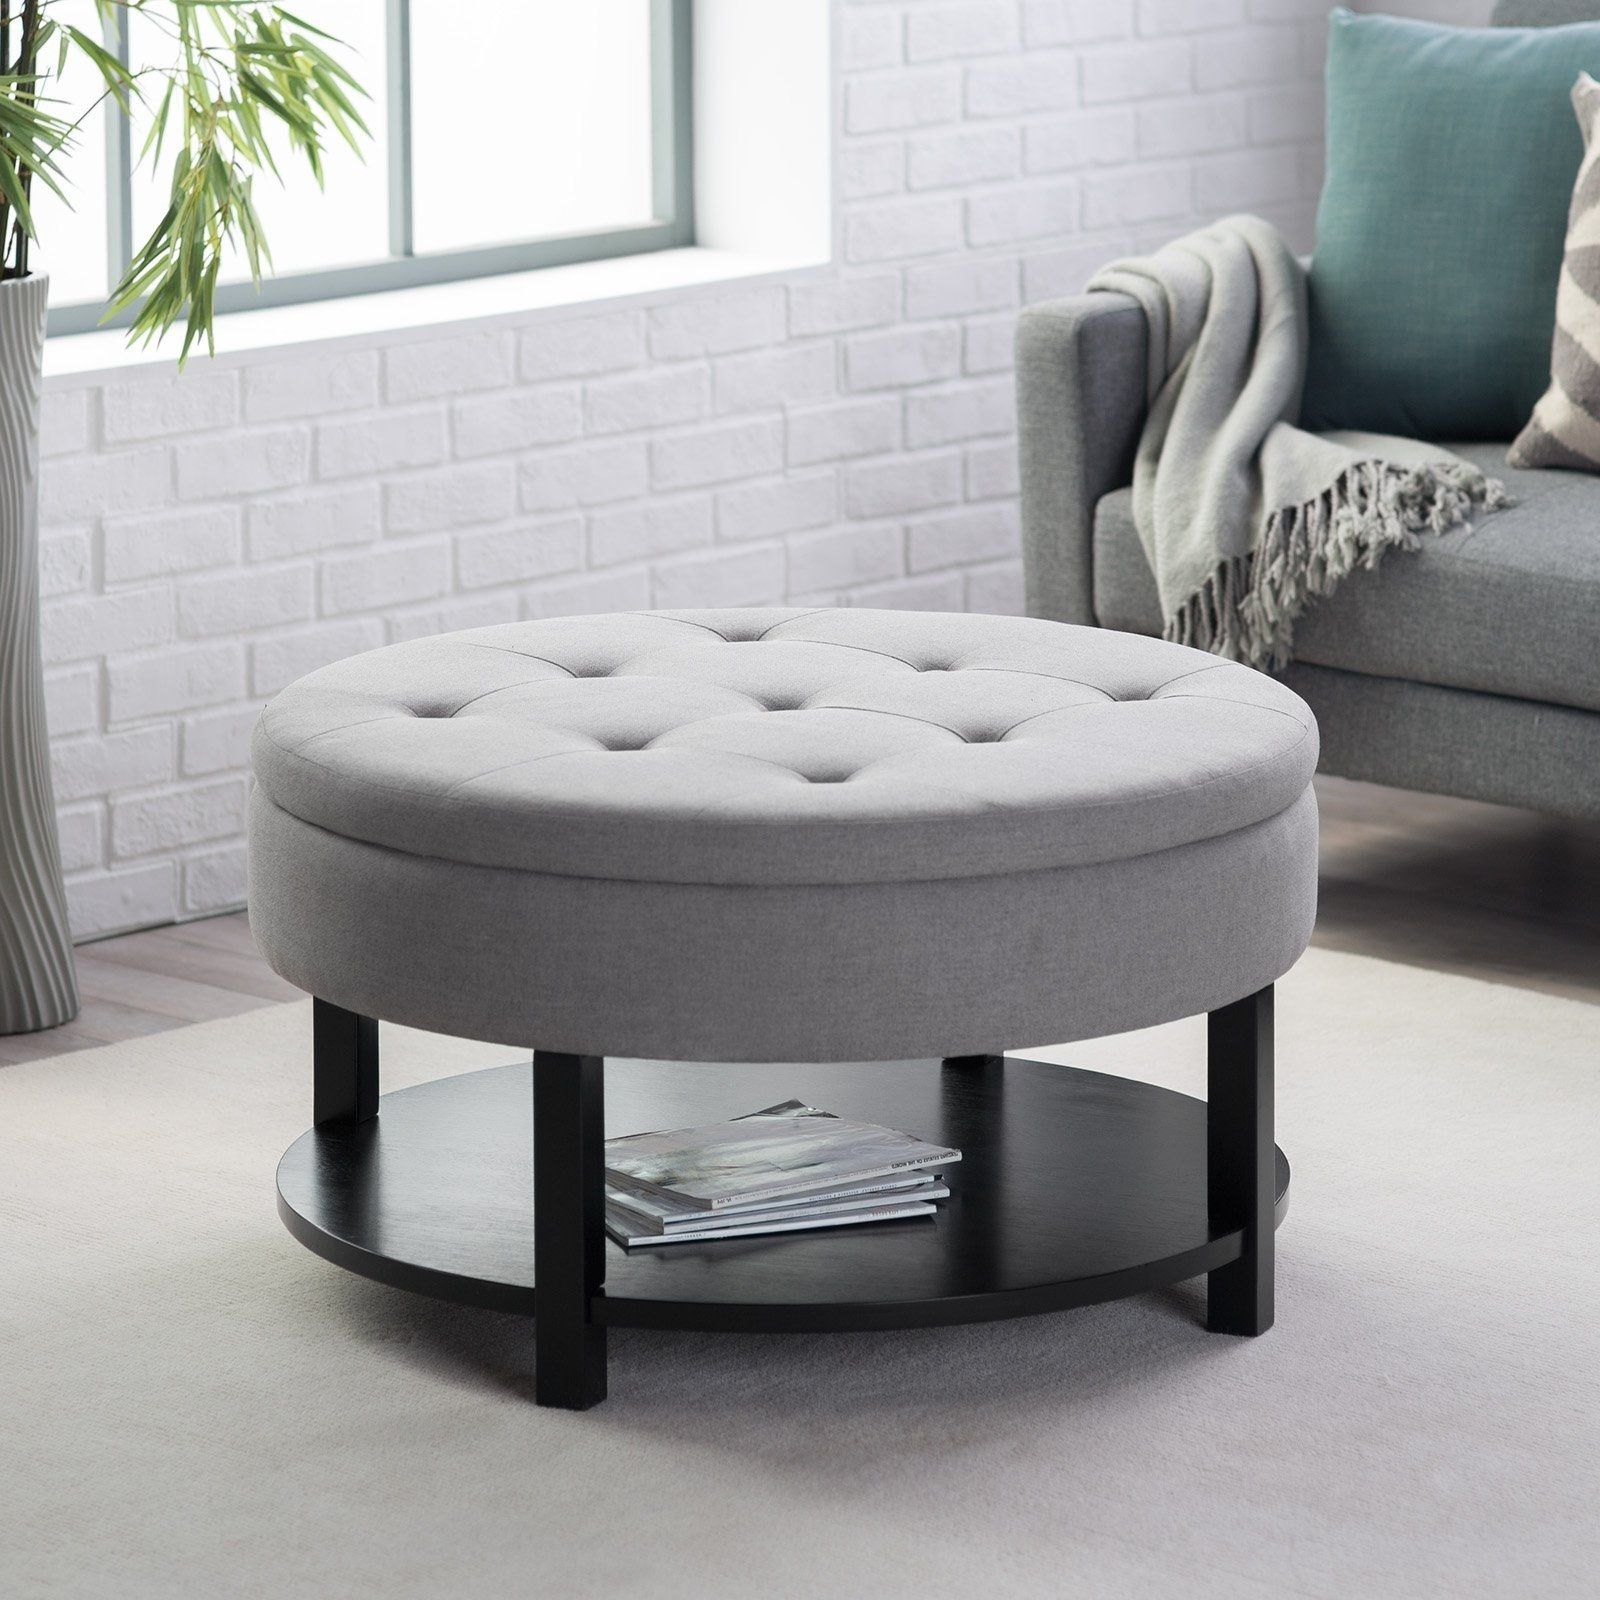 Round Upholstered Ottoman Coffee Table  Furniture Sets Living Extraordinary Living Room Table Sets Review